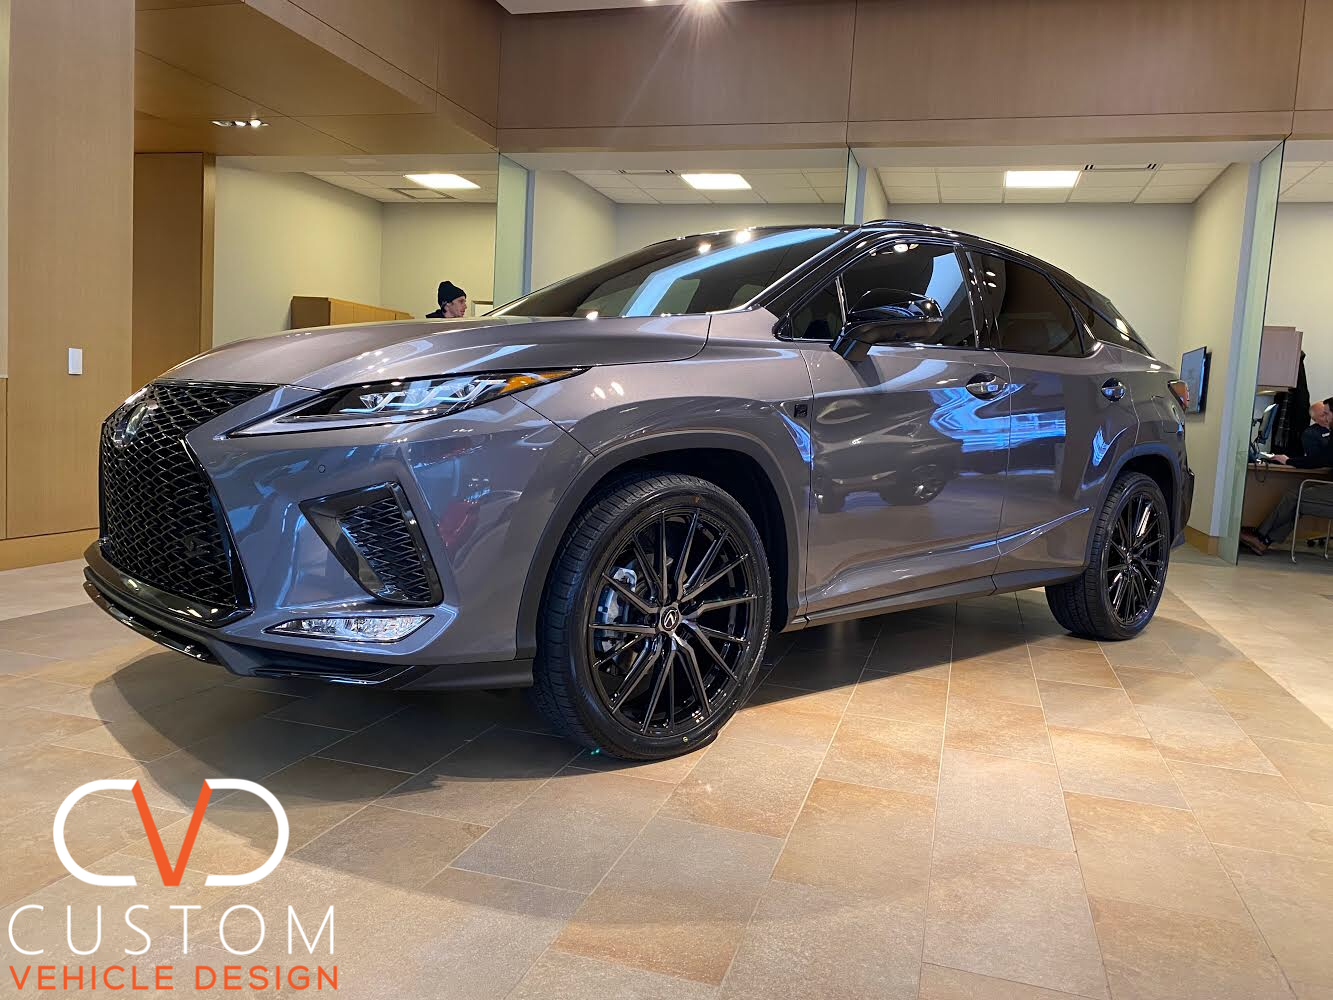 2020 Lexus Orca Edition Rx350 F Sport With 22 Vossen Hf4t Wheels 2020 Lexus Rx350 Fsport Lexusrx350 Voseenwheels Lexus Rx 350 Lexus Lexus Rx 350 Sport